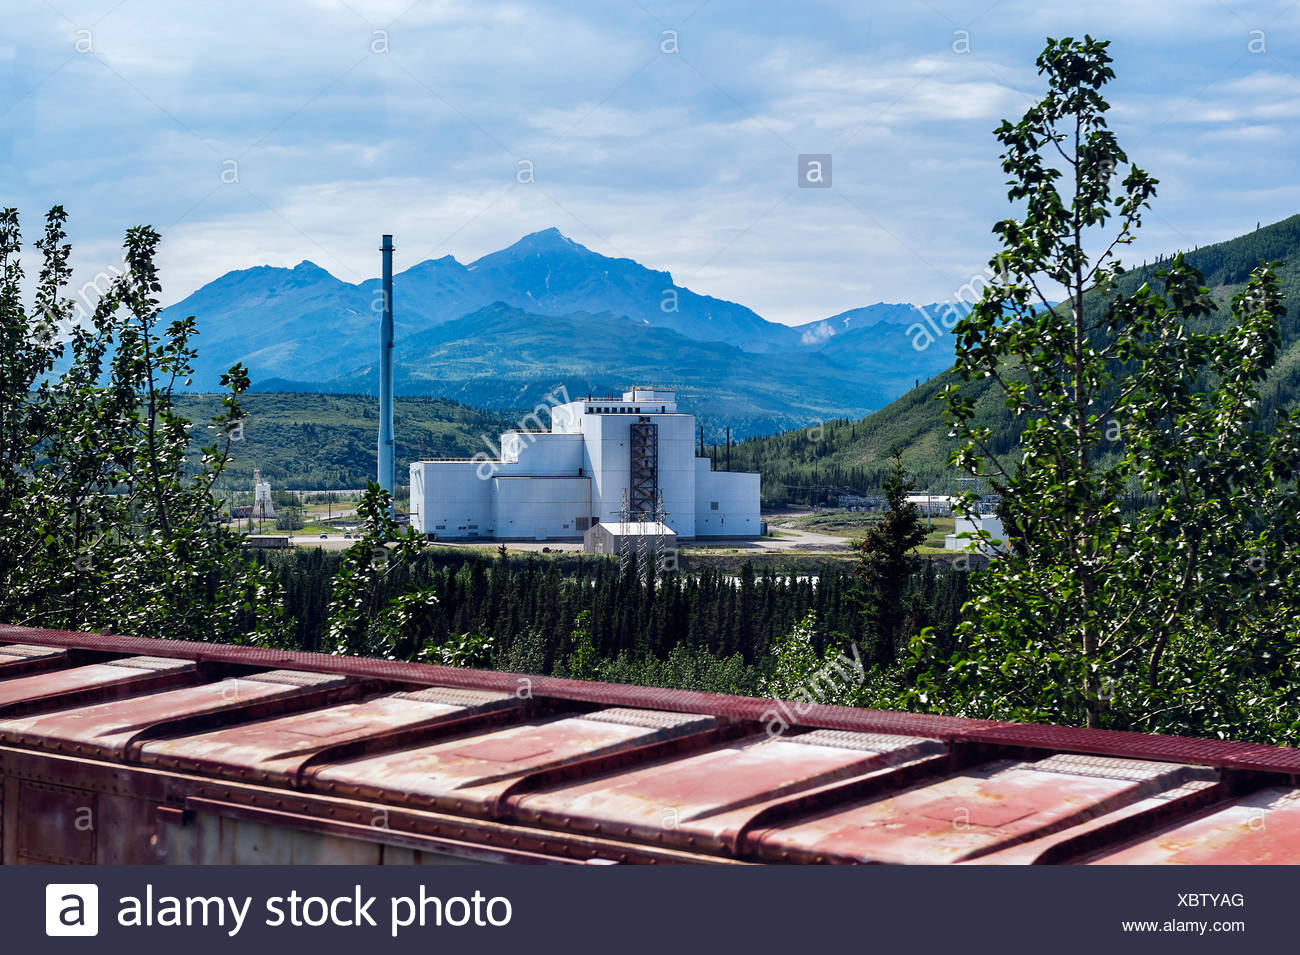 Coal power plant in Healy, Alaska, featuring state-of-the-art coal combustors and pollution controls, has passed its environment - Stock Image